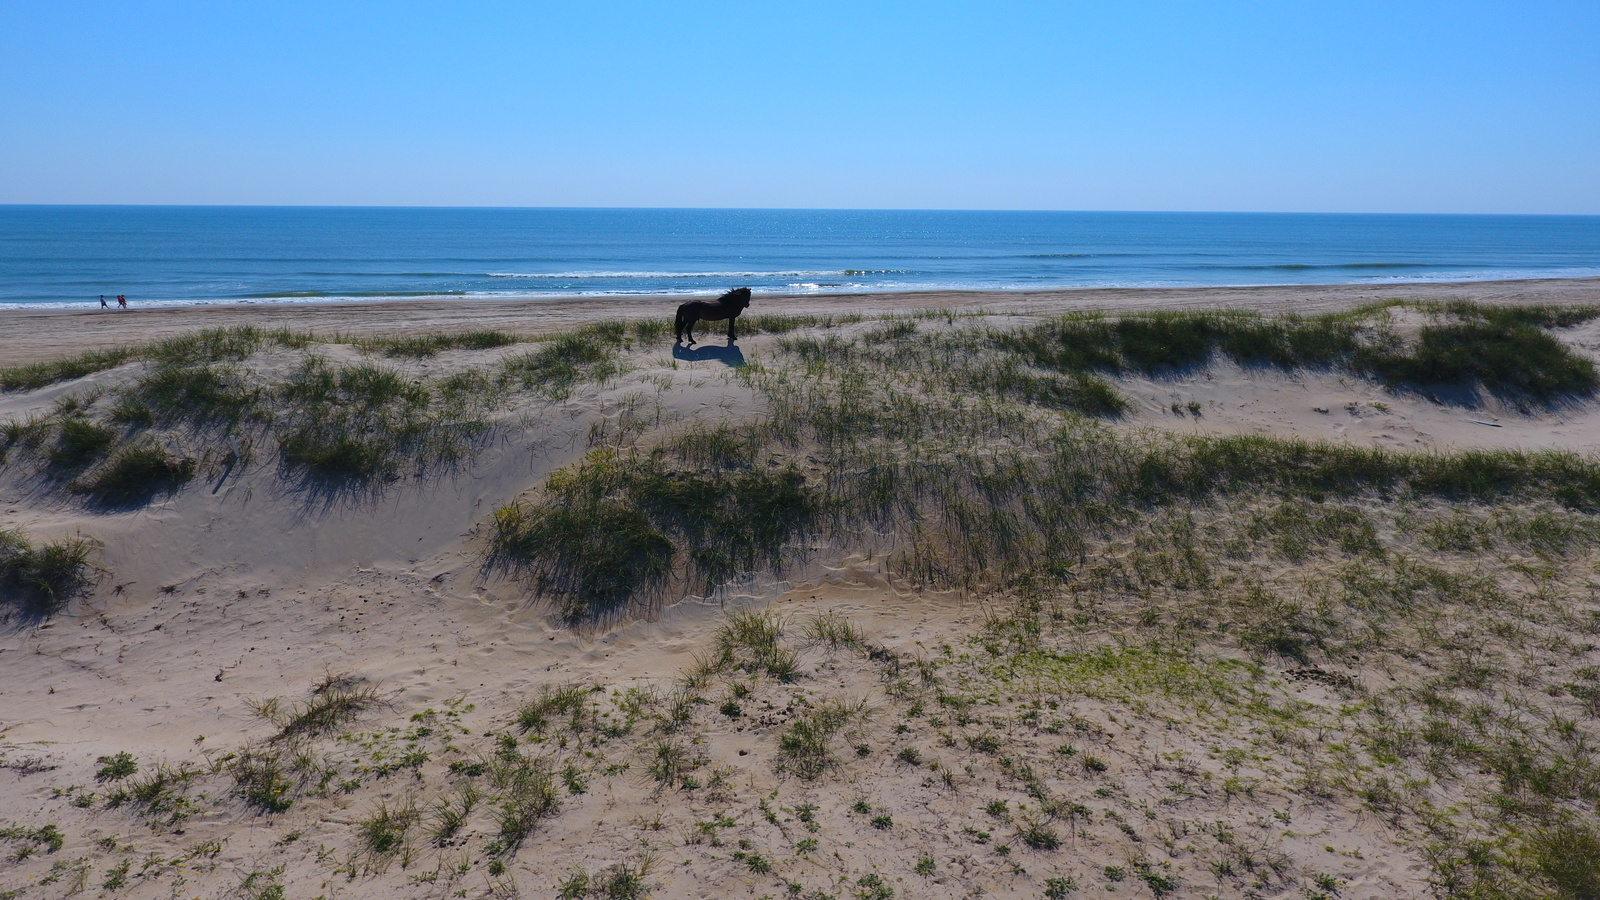 Horseouterbanks 2